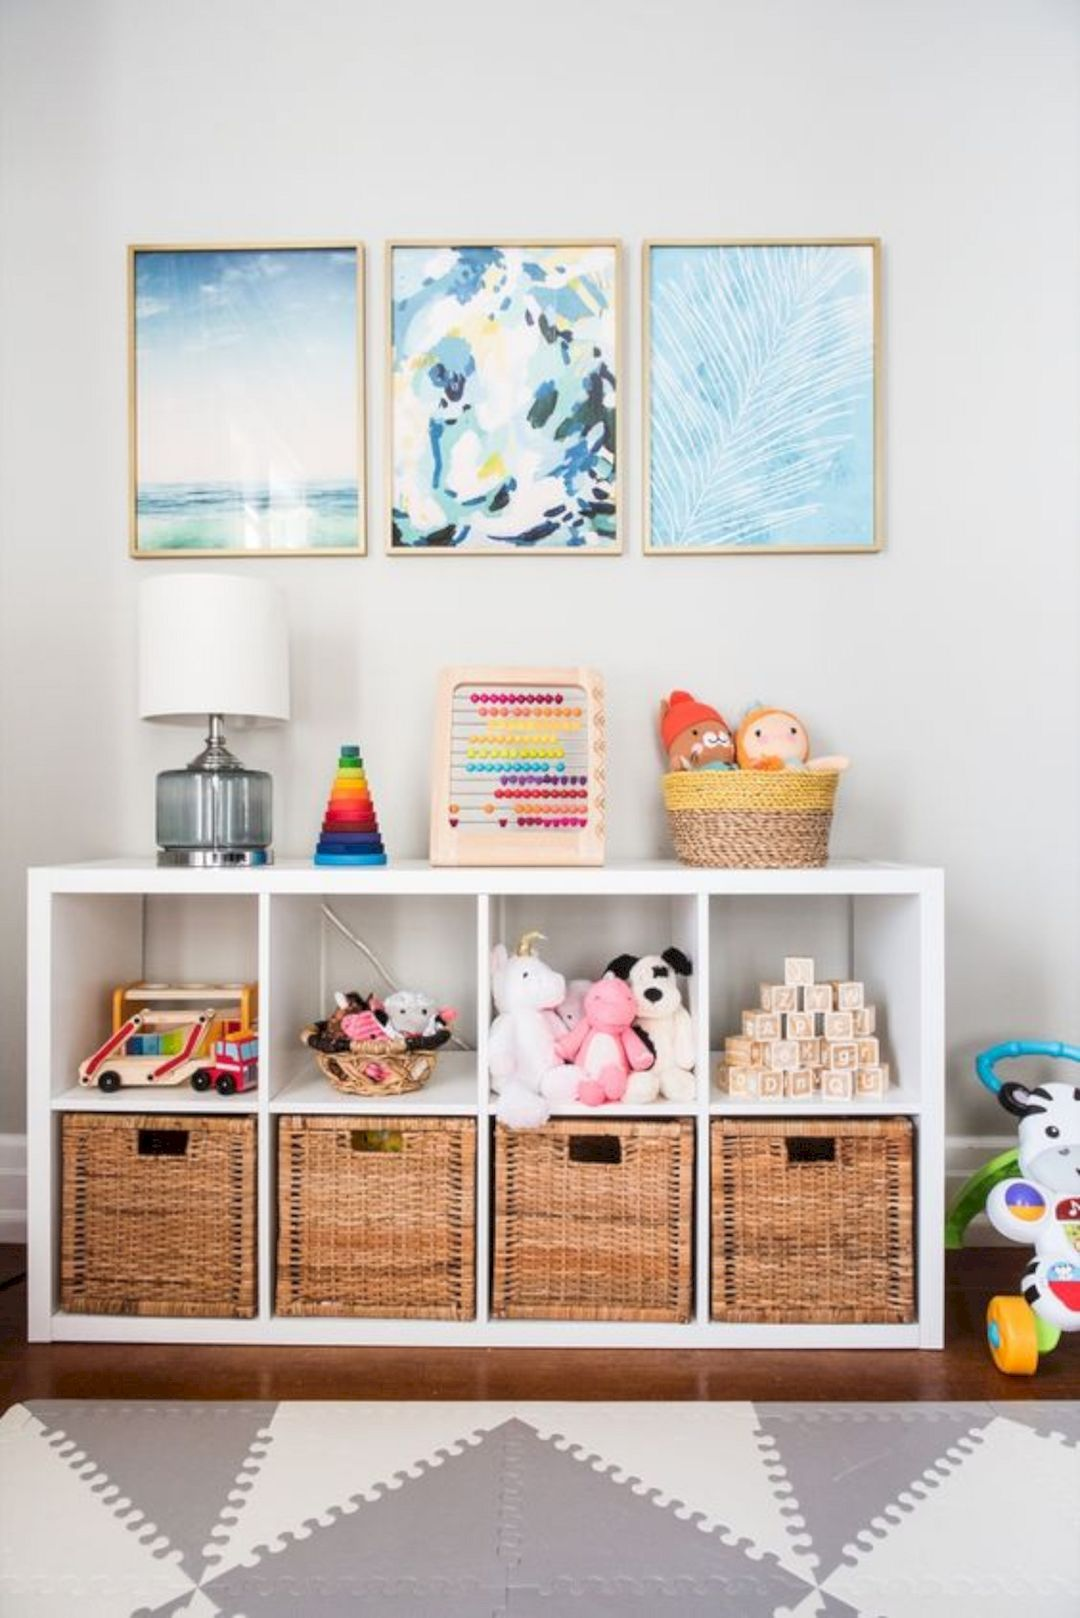 15 Cute Nursery Wall Decorations You Want to Steal | Camilo